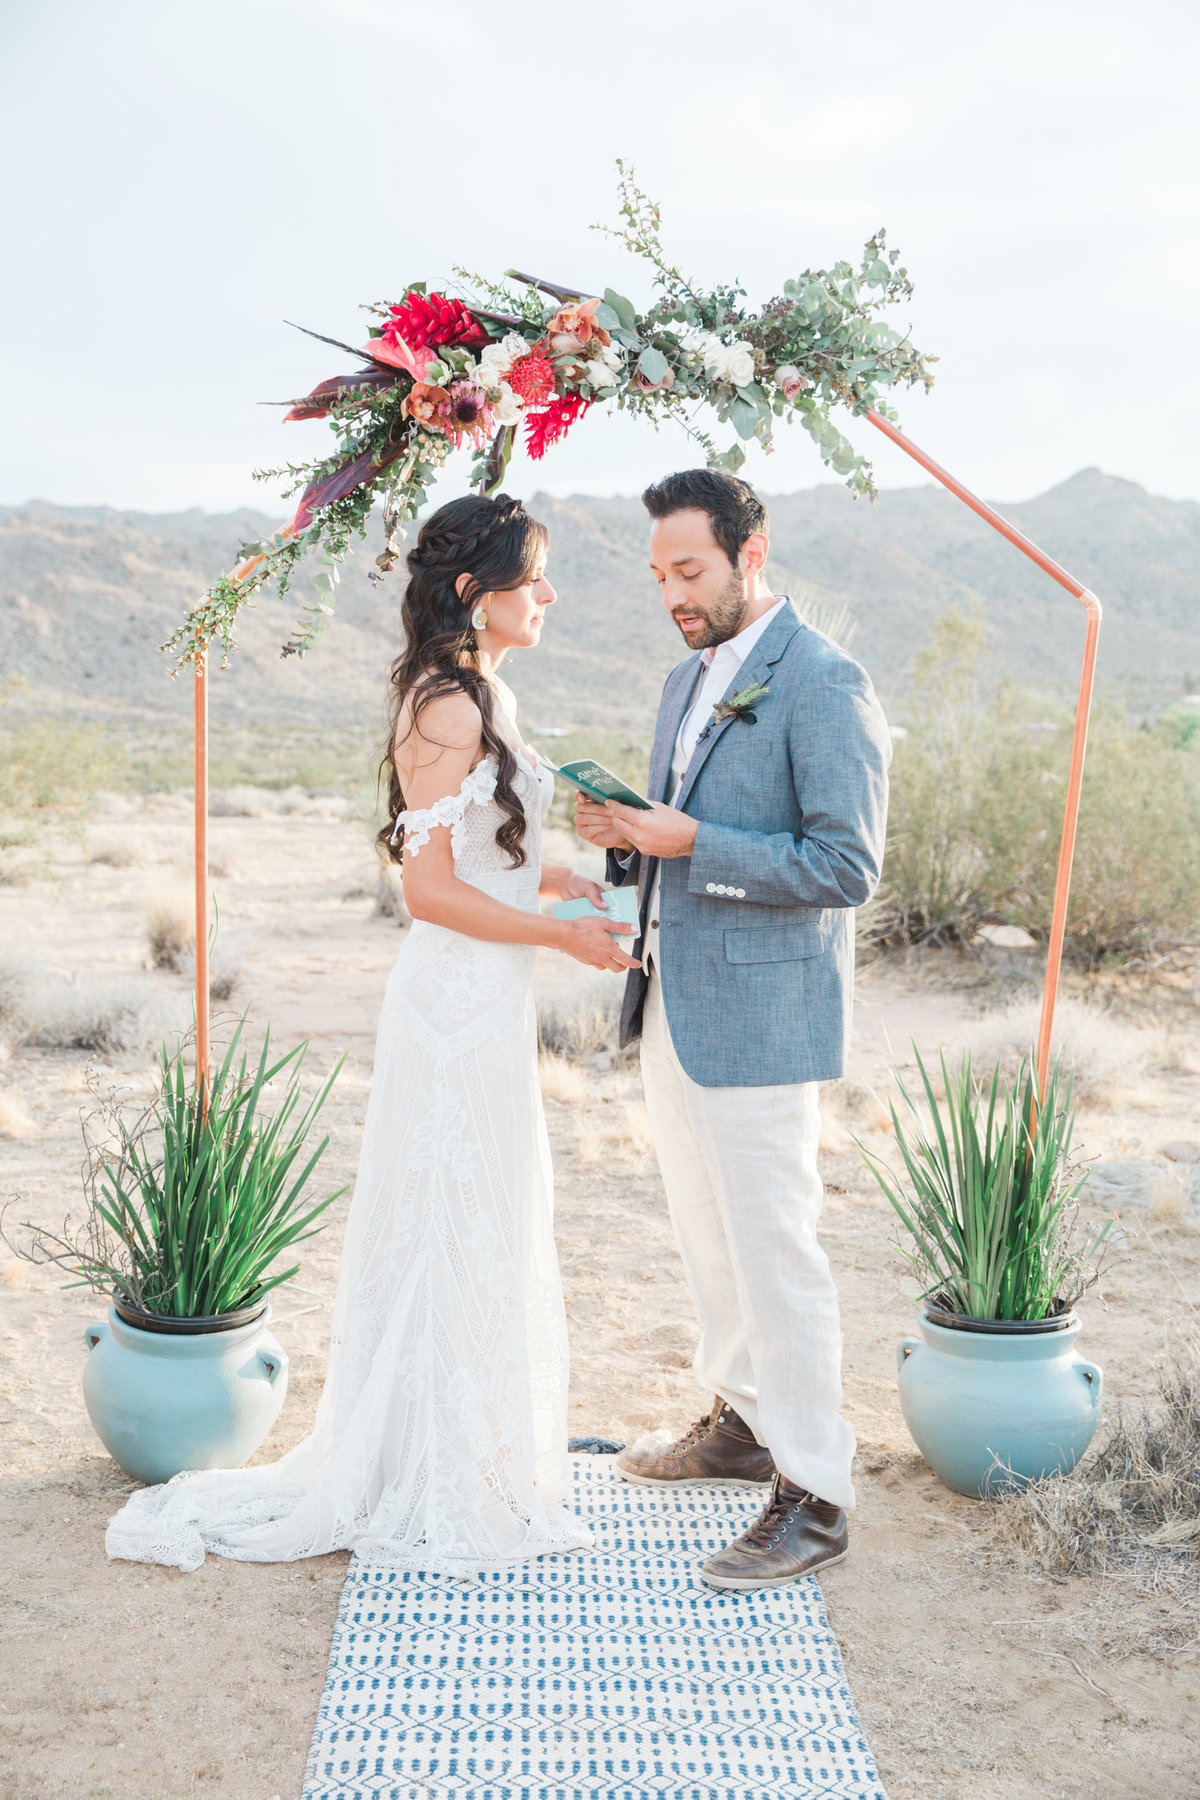 California Destination Wedding - Photographer Erica Melissa